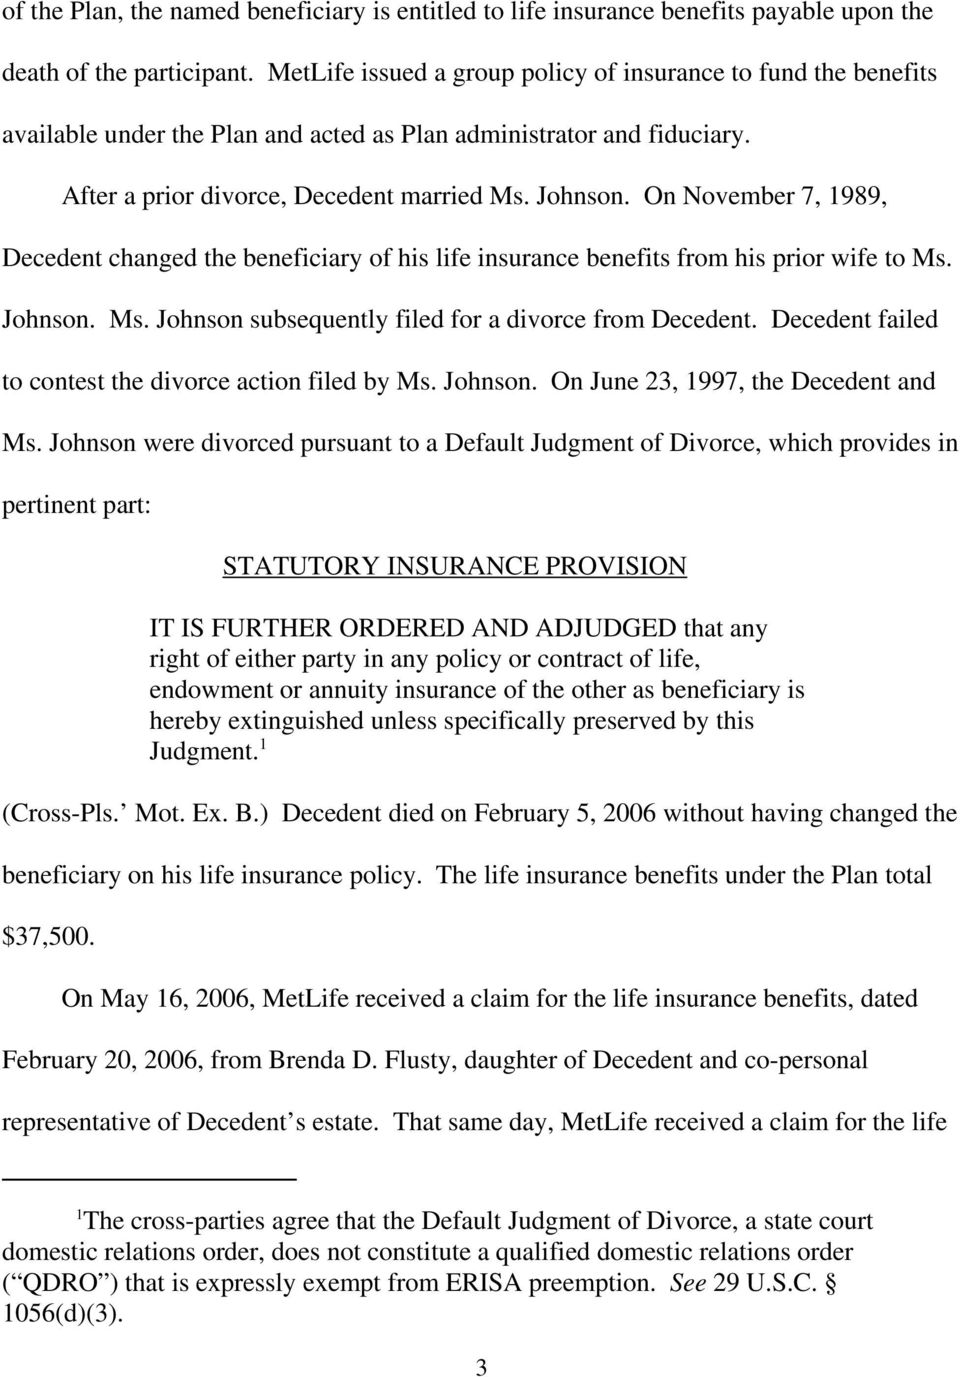 On November 7, 1989, Decedent changed the beneficiary of his life insurance benefits from his prior wife to Ms. Johnson. Ms. Johnson subsequently filed for a divorce from Decedent.